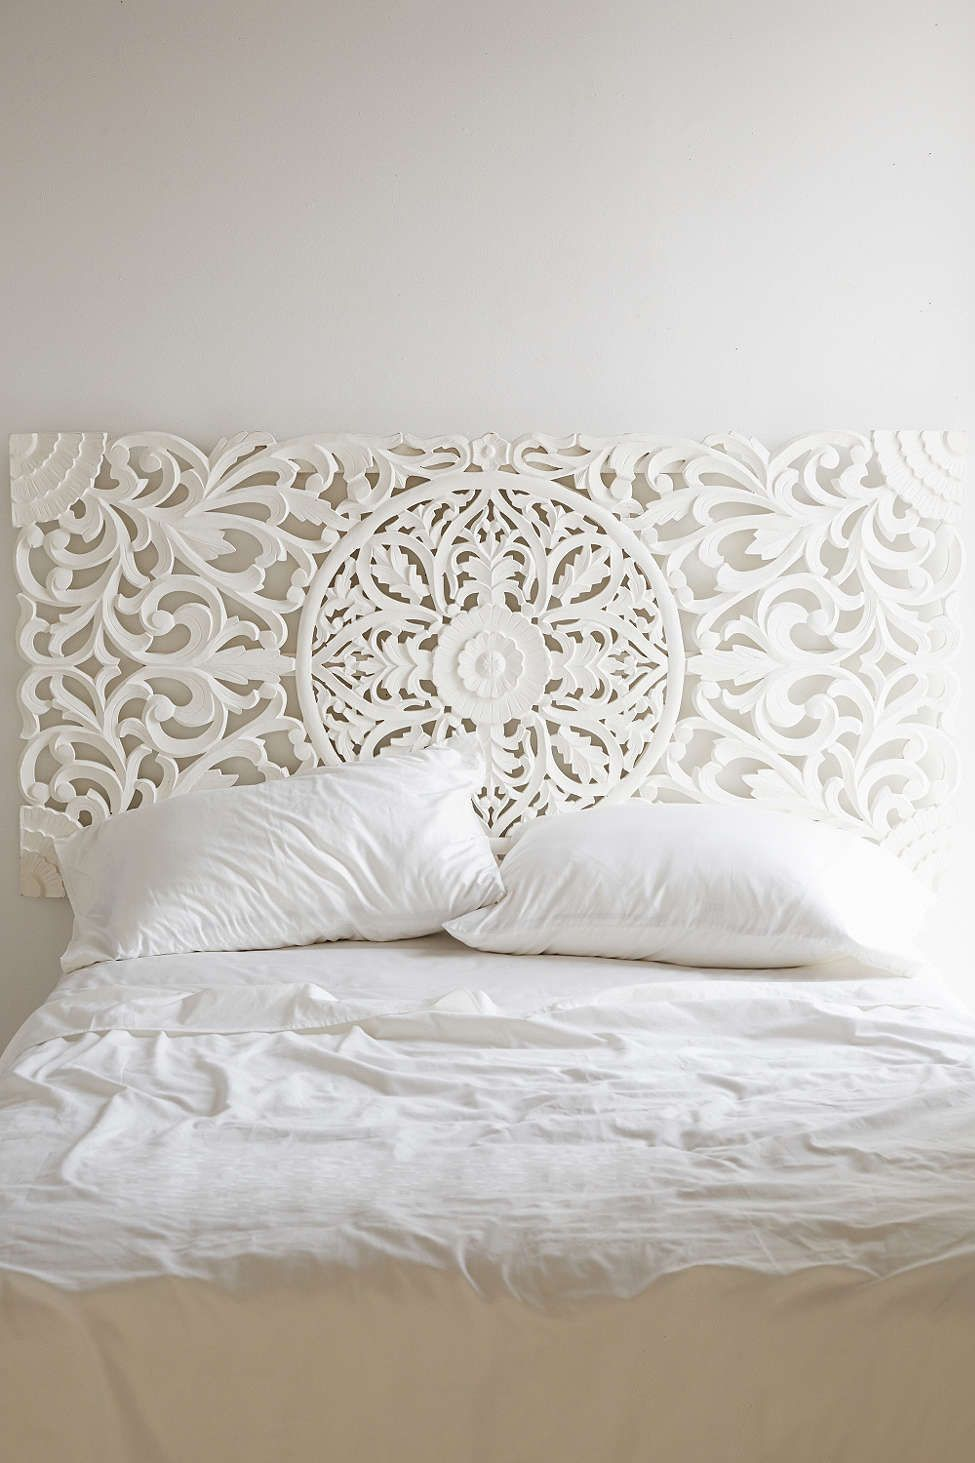 White Carved Wood Headboard Home Decor